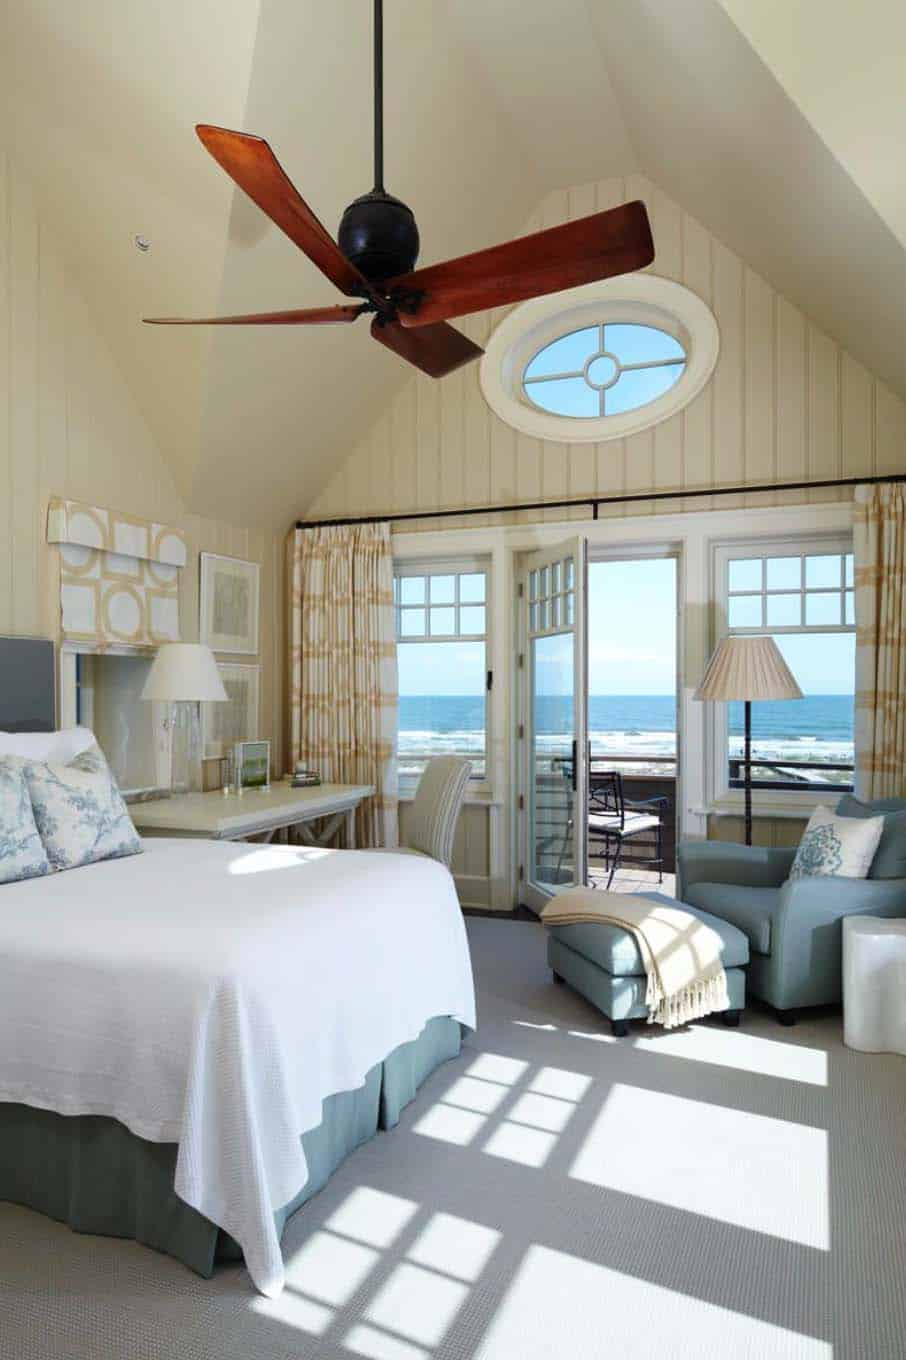 Bedroom With Ocean Views-31-1 Kindesign